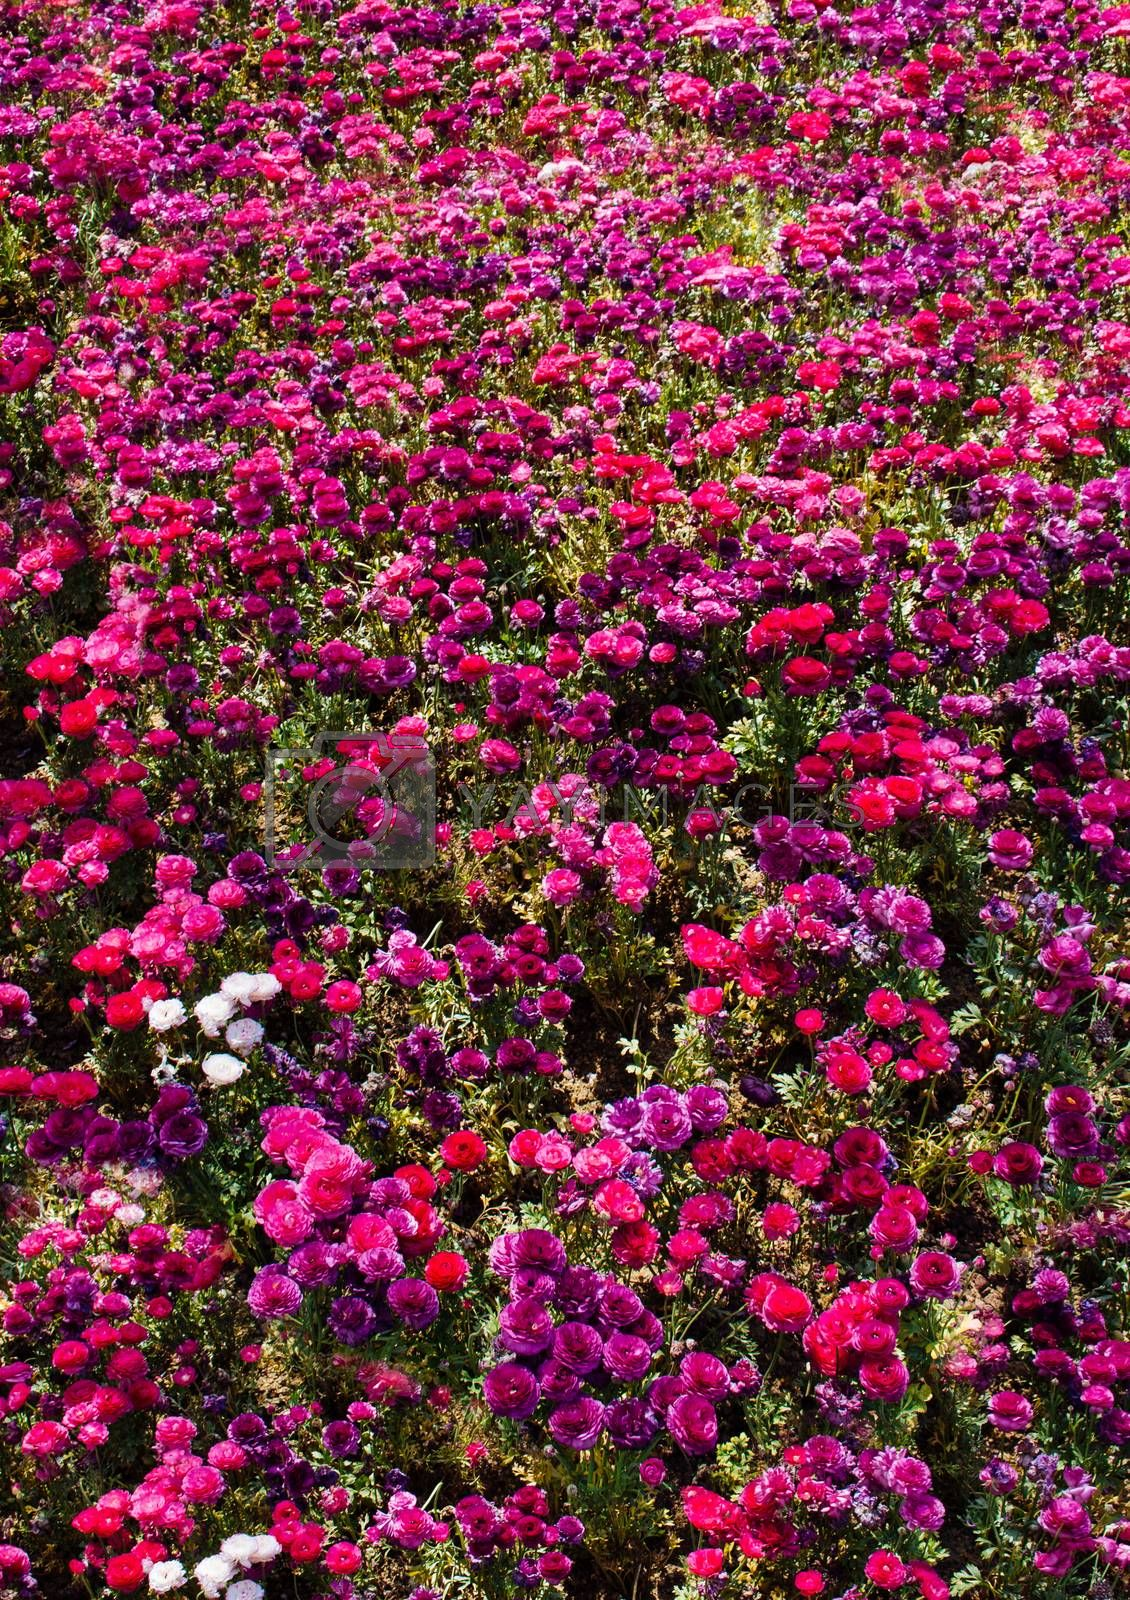 Blooming beautiful colorful fresh natural flowers in view